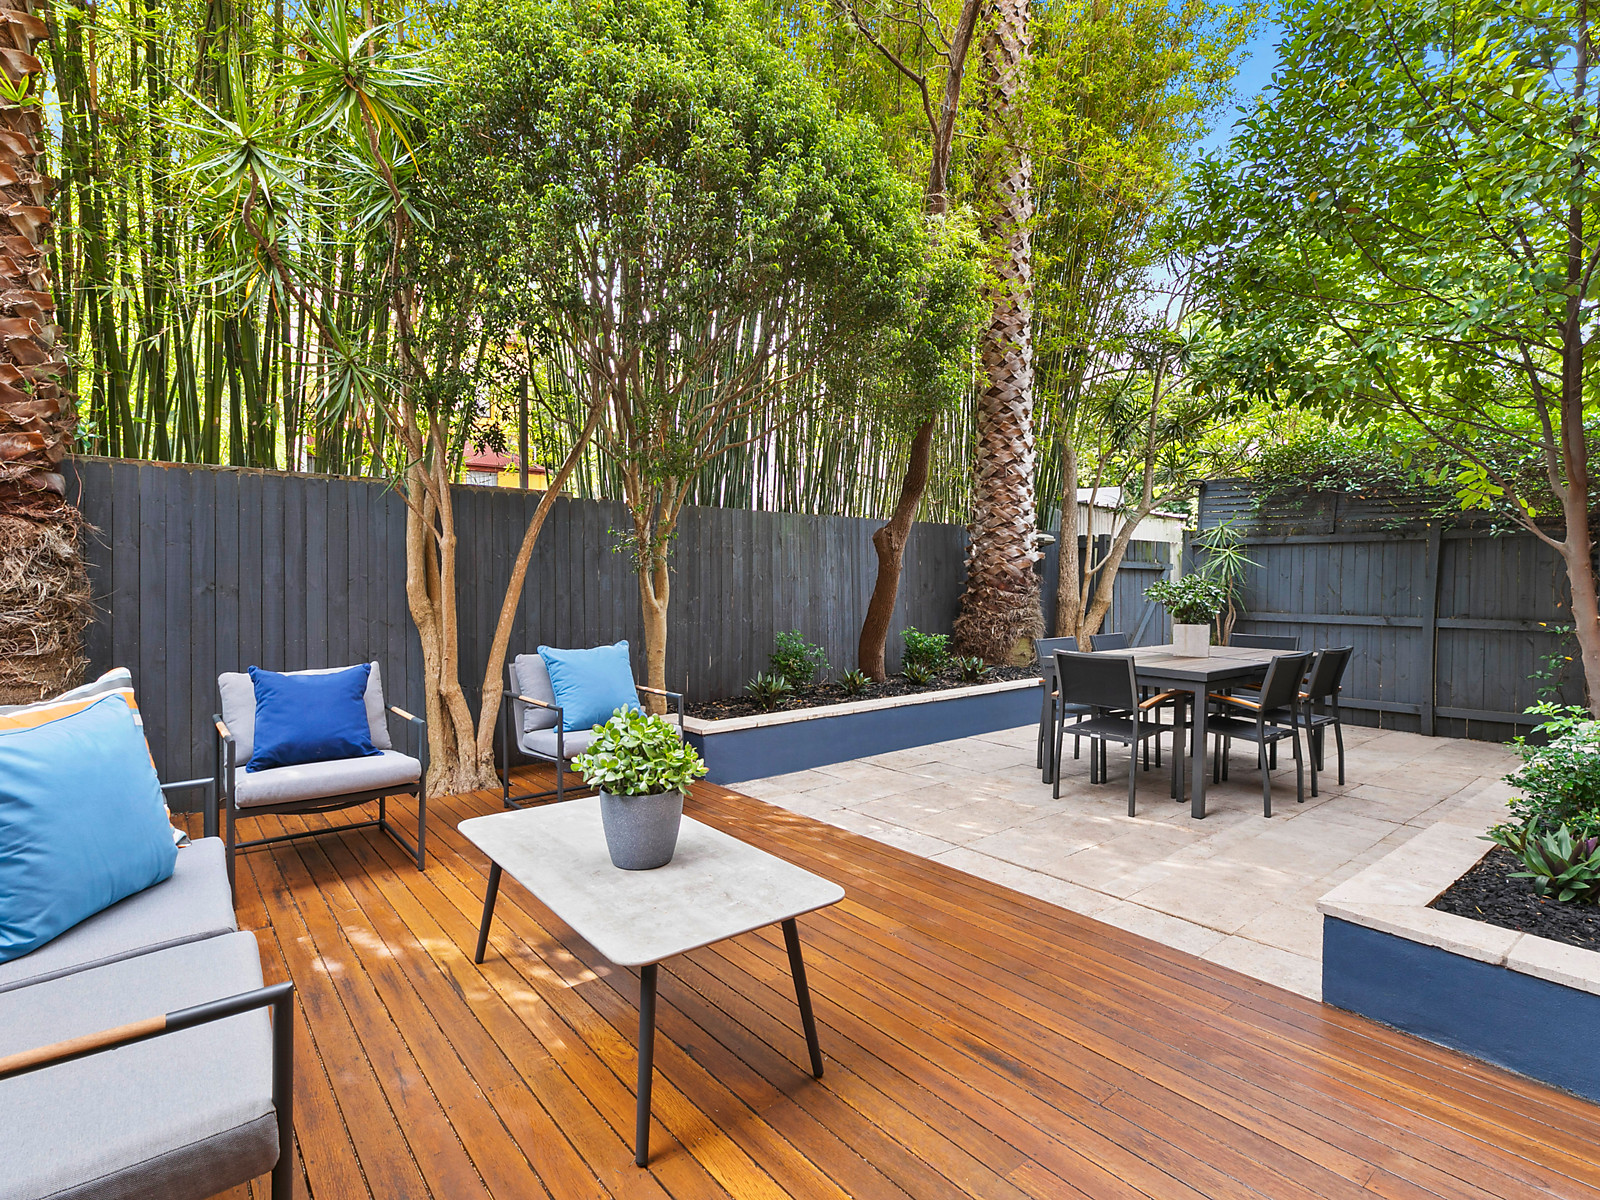 4/1-7 Boronia Street, Redfern NSW 2016